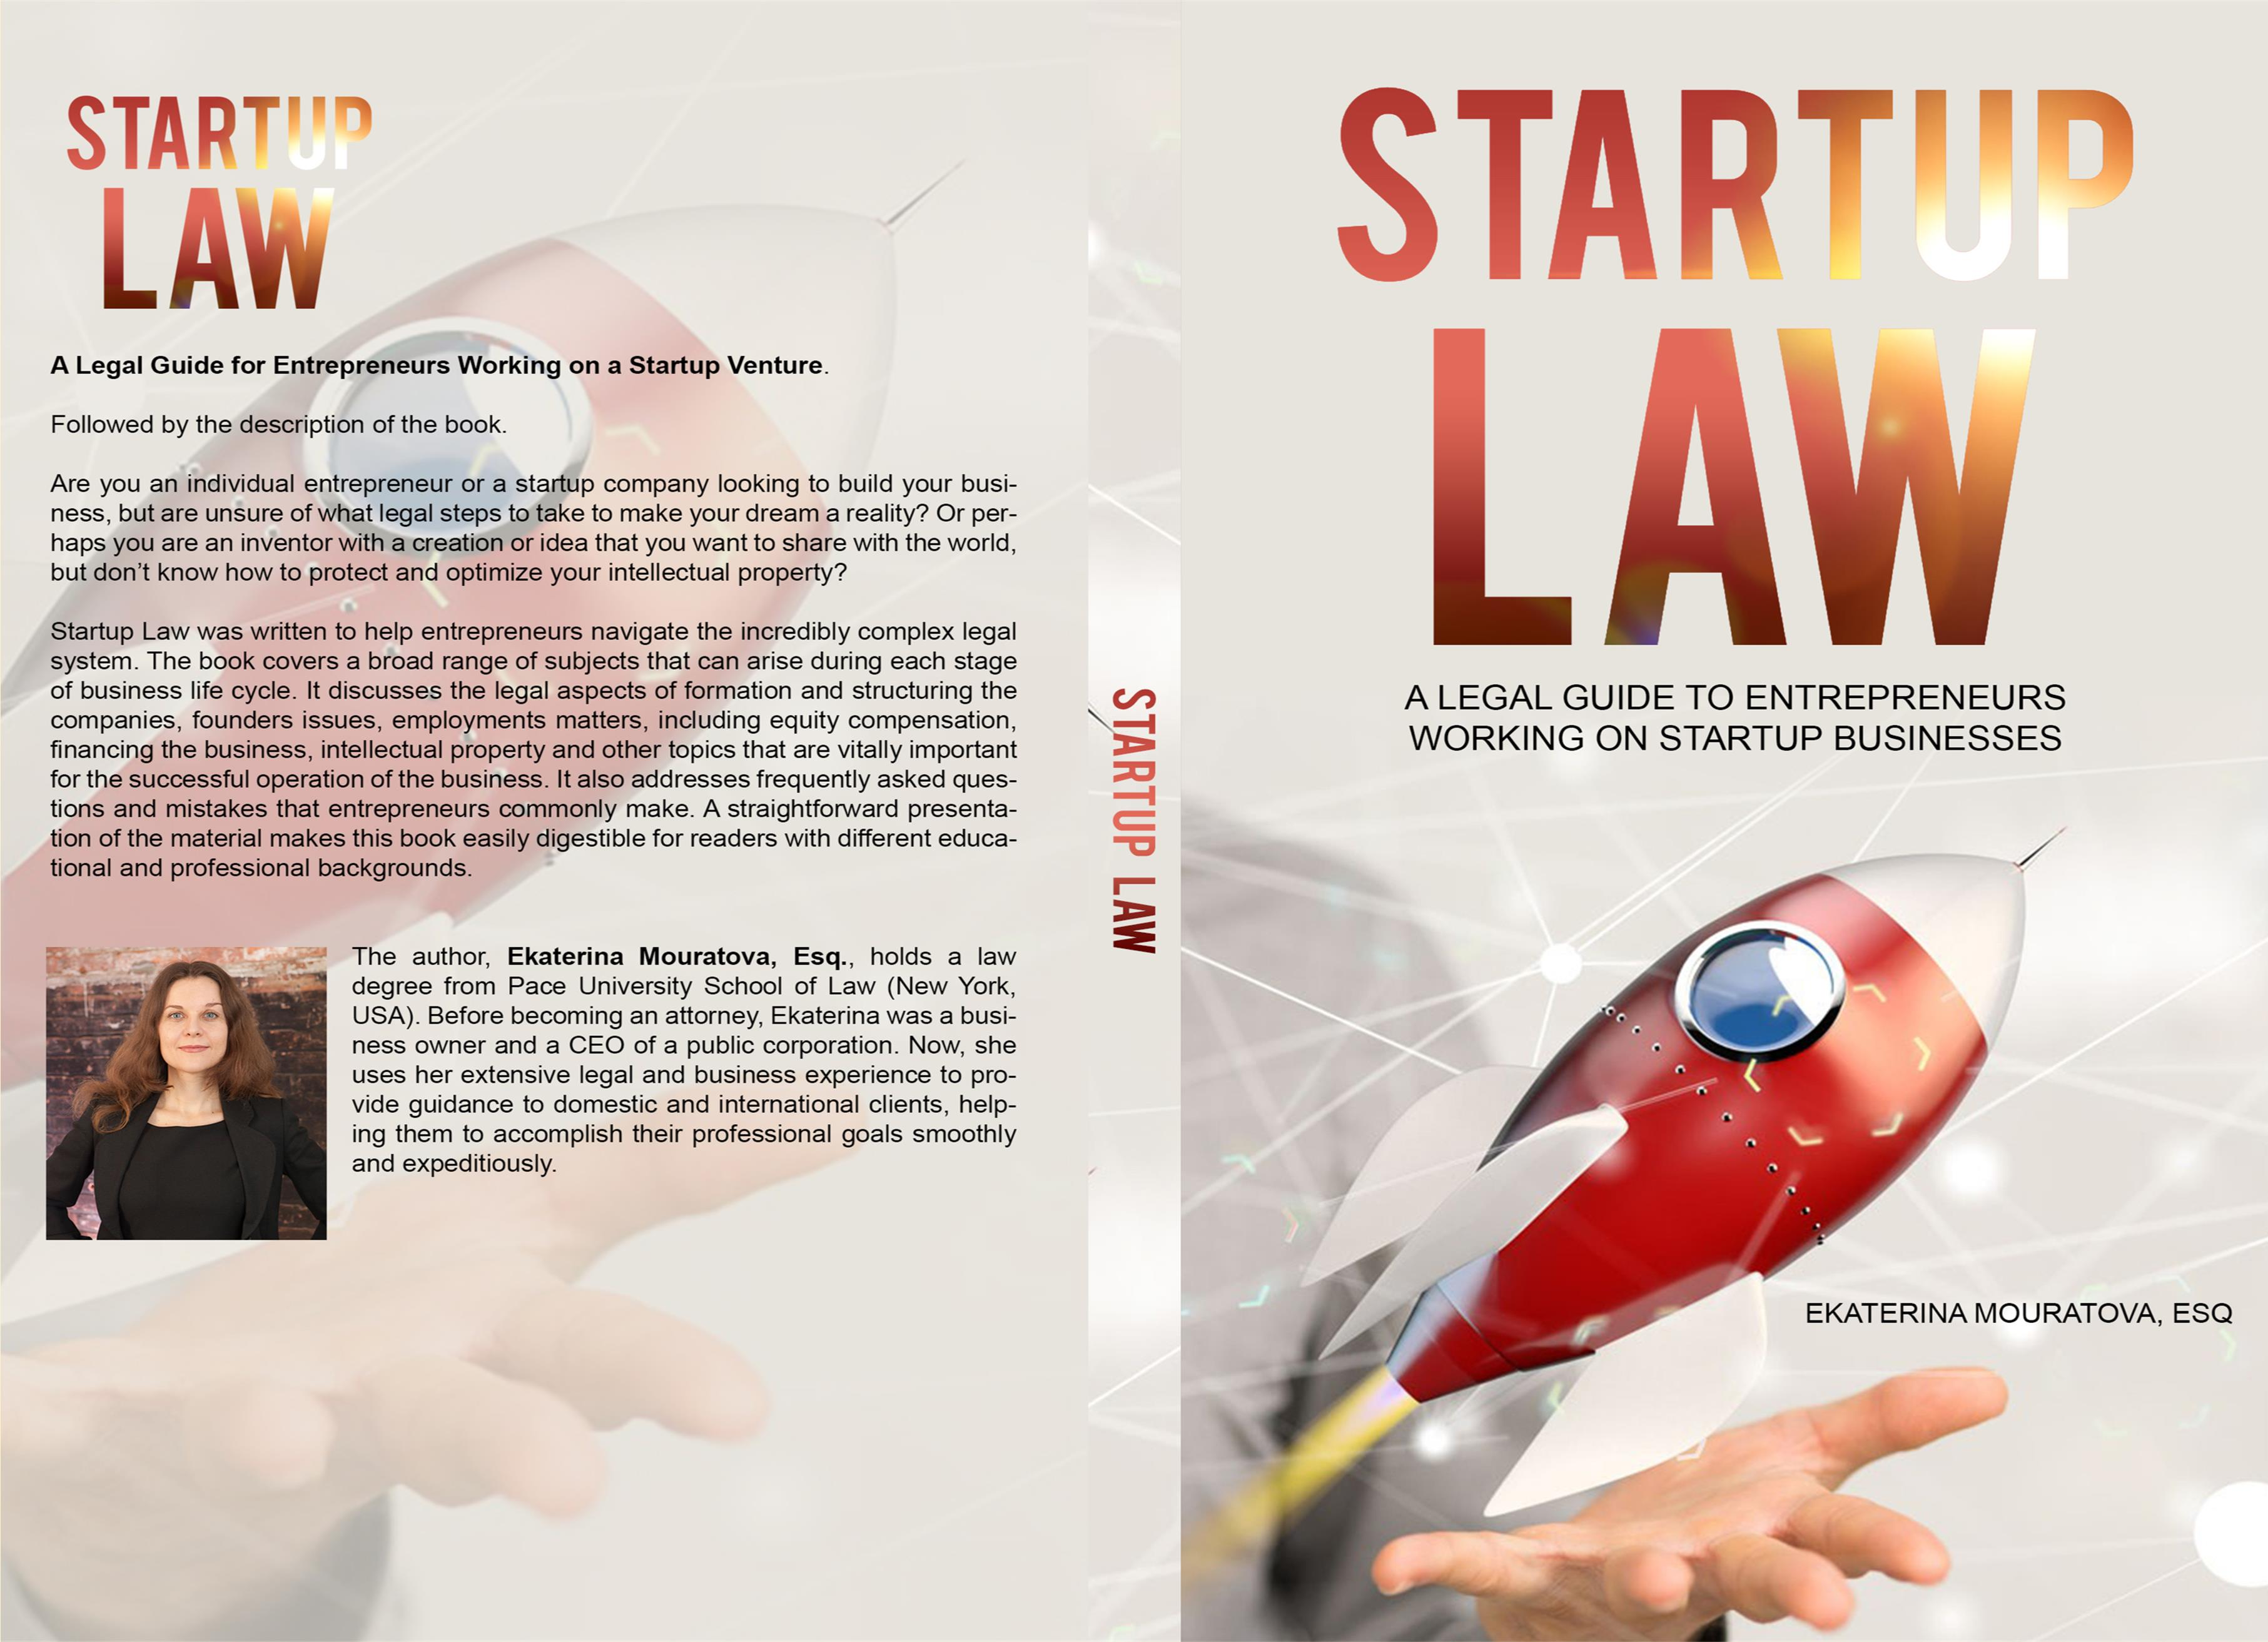 STARTUP LAW. A Legal Guide for Entrepreneurs Working on a Startup Venture. cover image